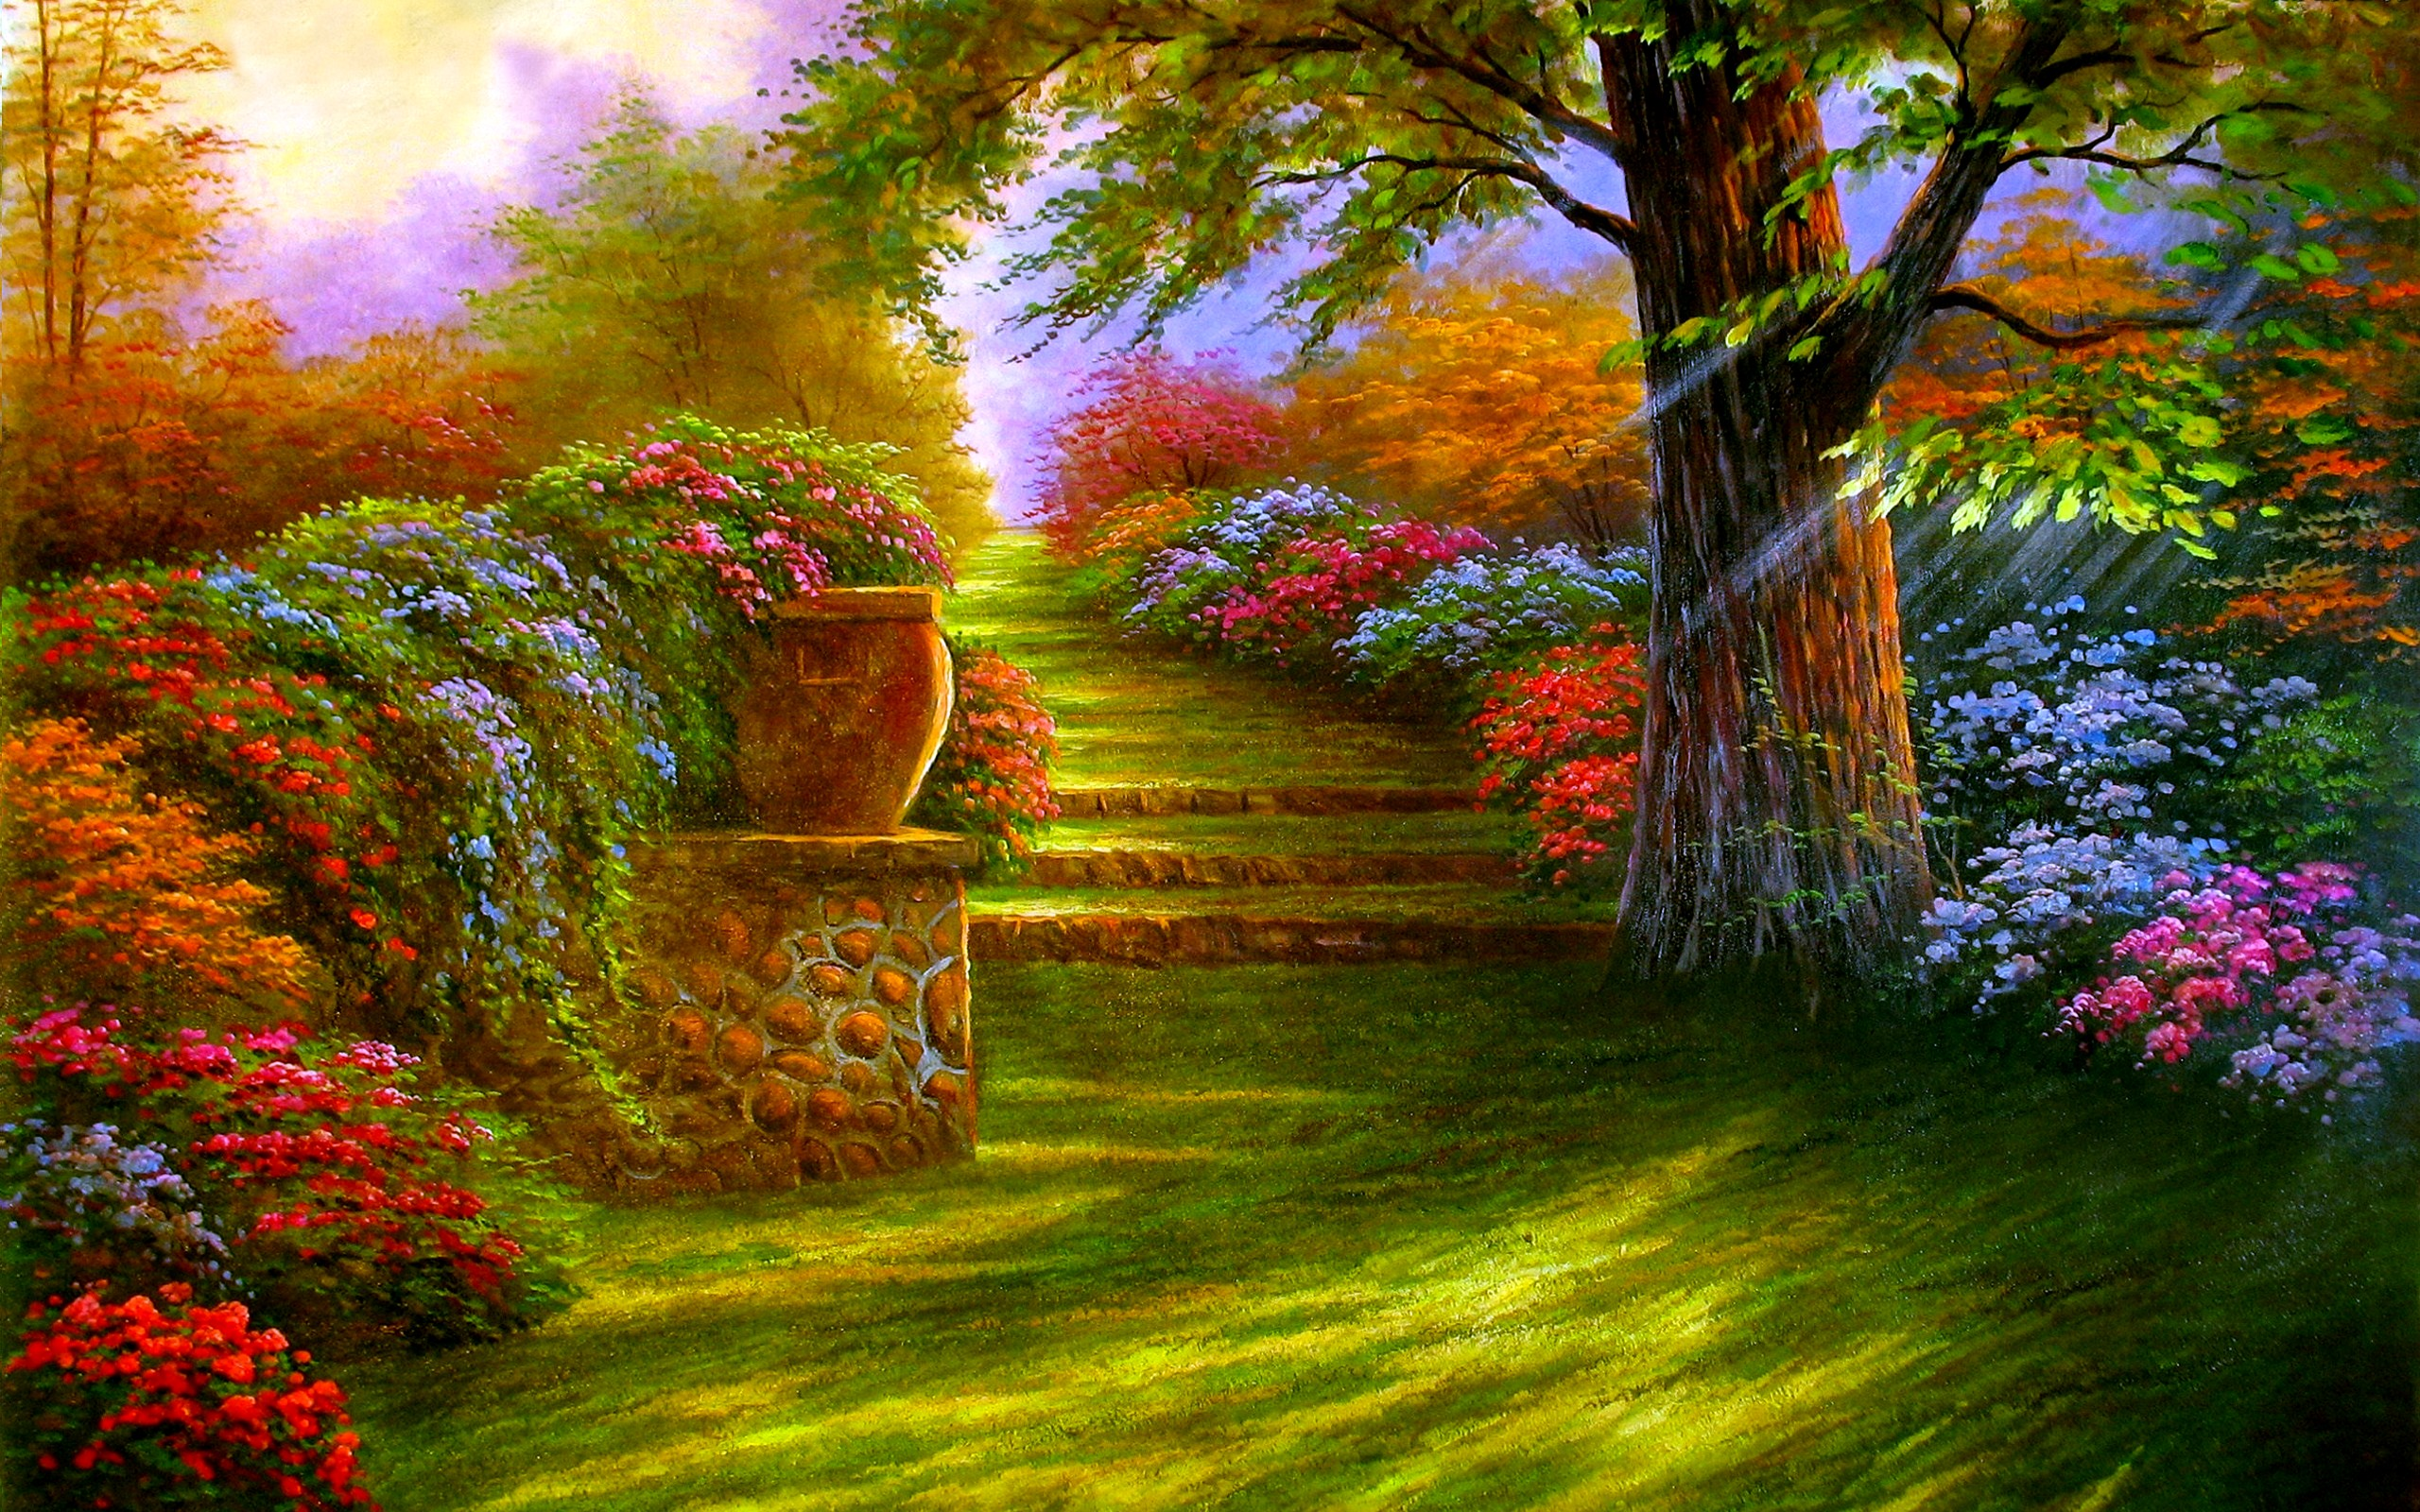 Kirschbaum Wallpaper Garden Wallpapers High Quality Download Free